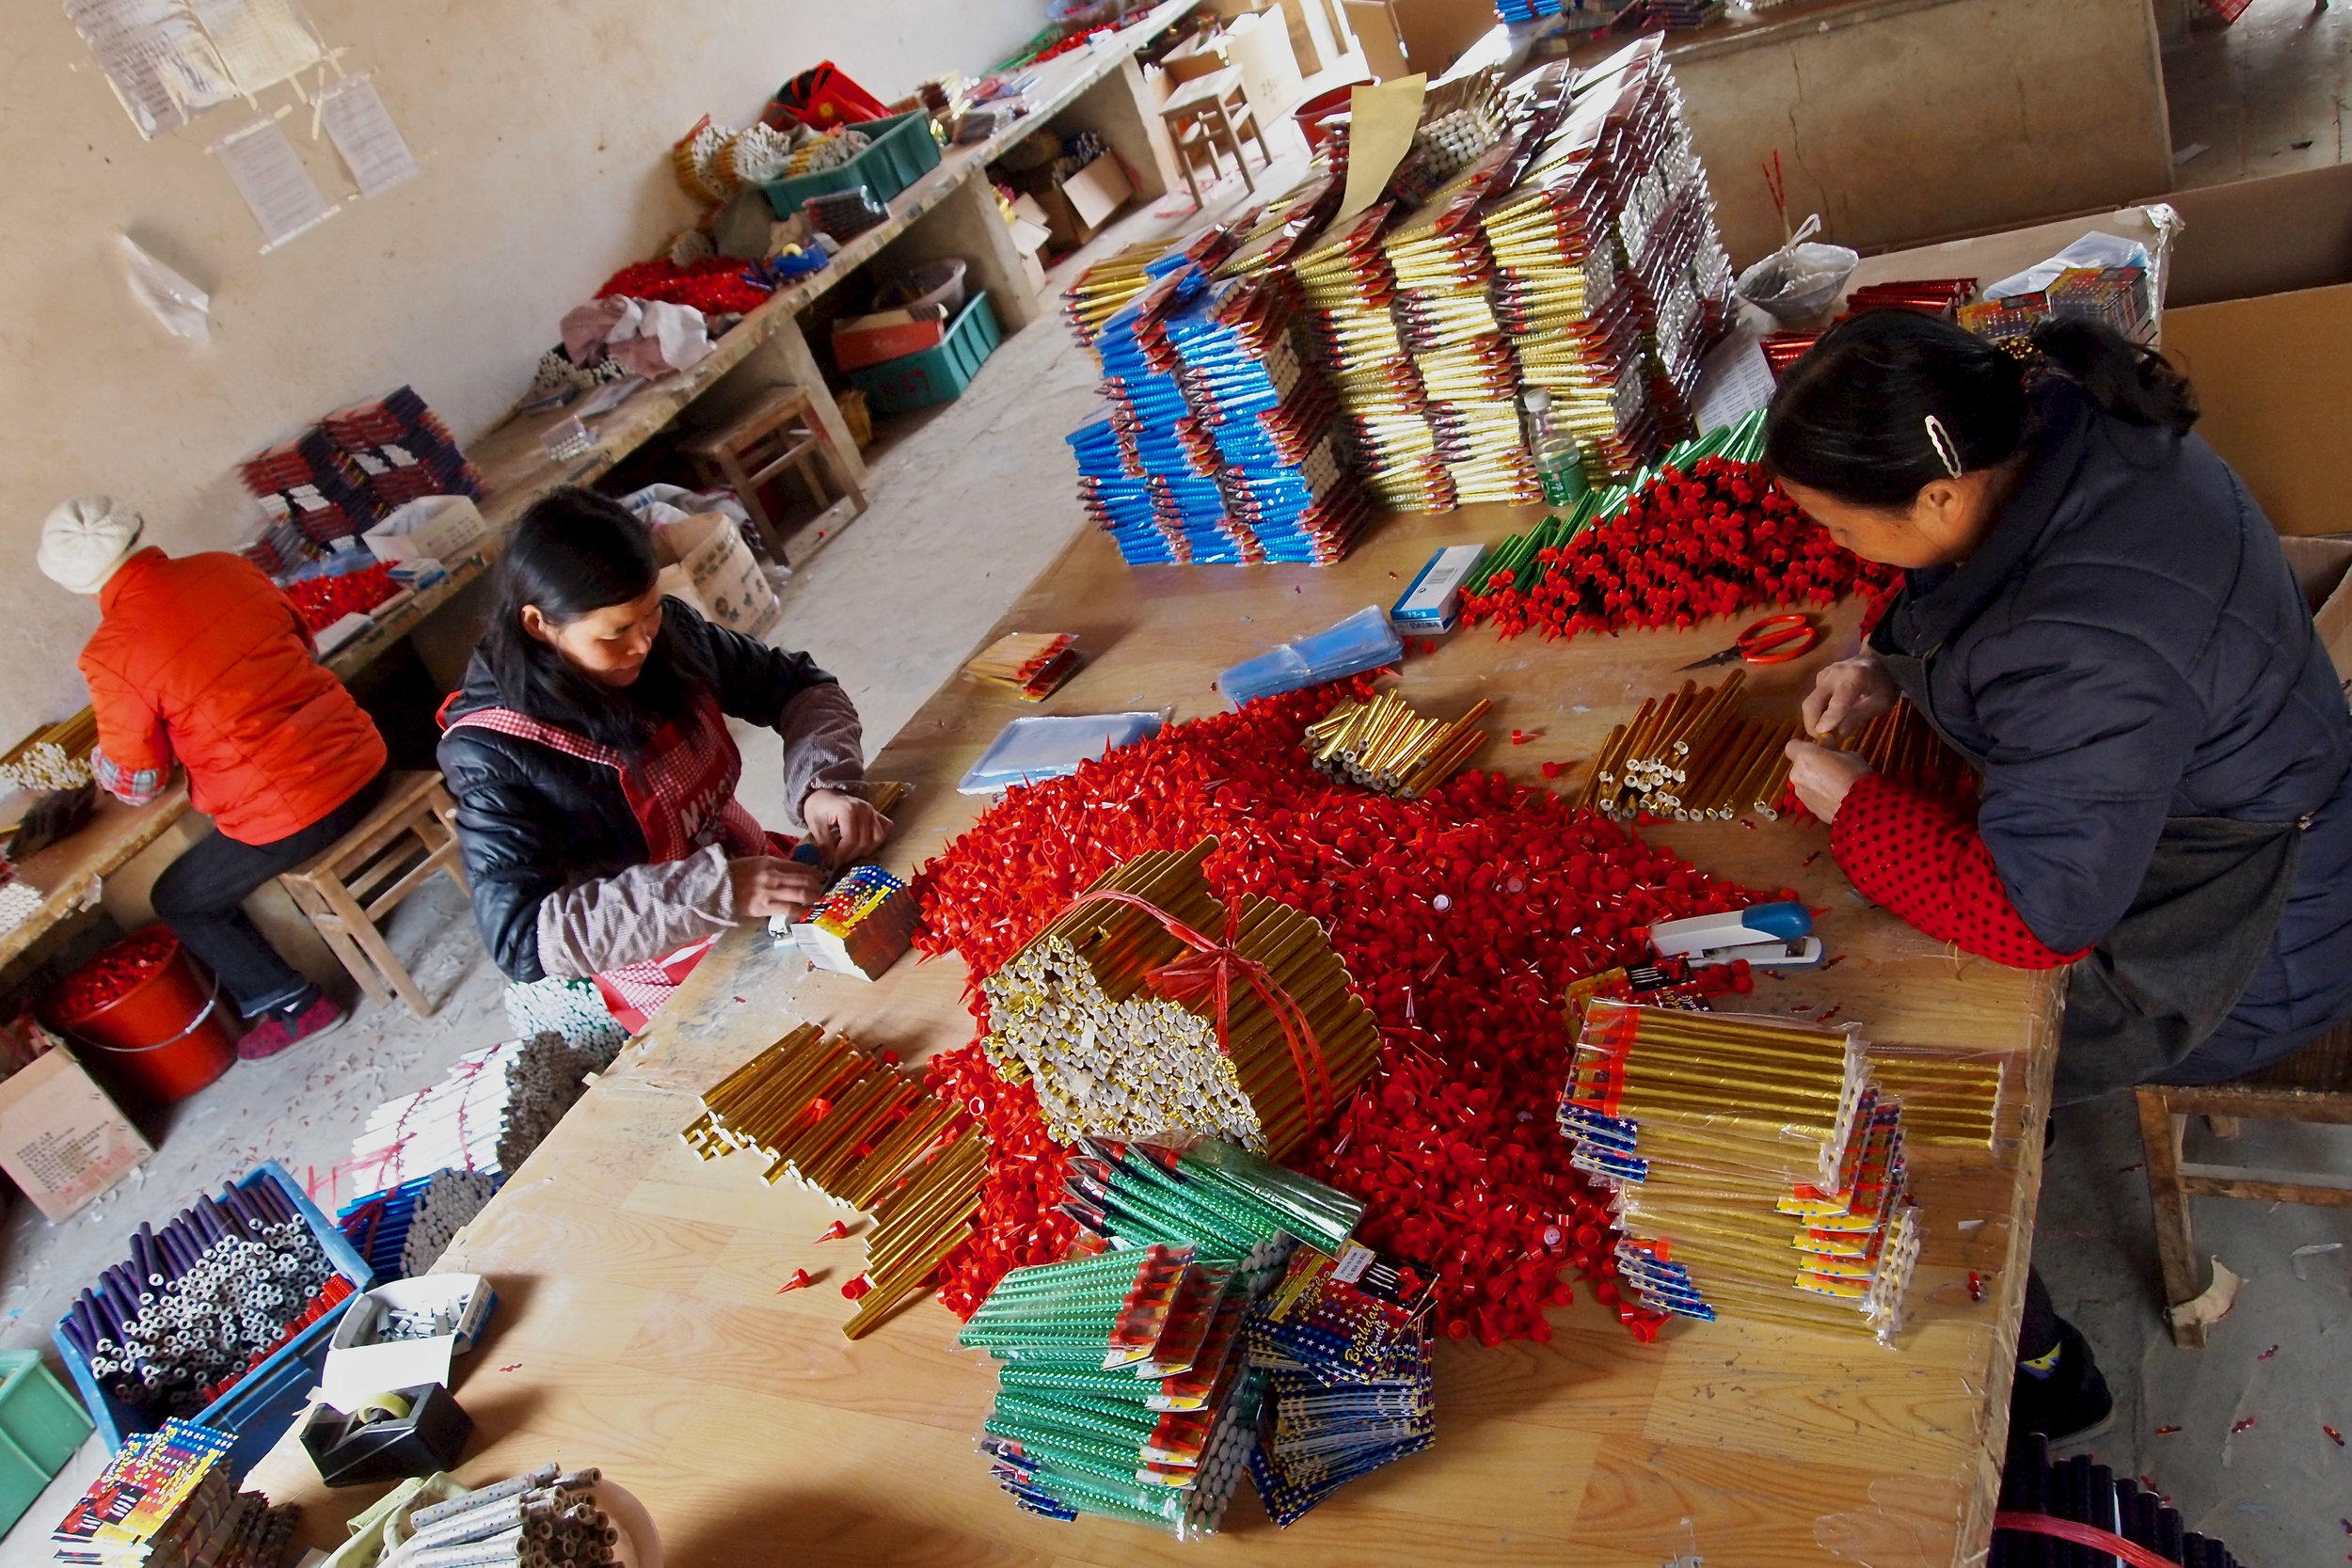 Employees labeling fireworks at Dream Fireworks in Liuyang, China. Photo: (C) Remko Tanis